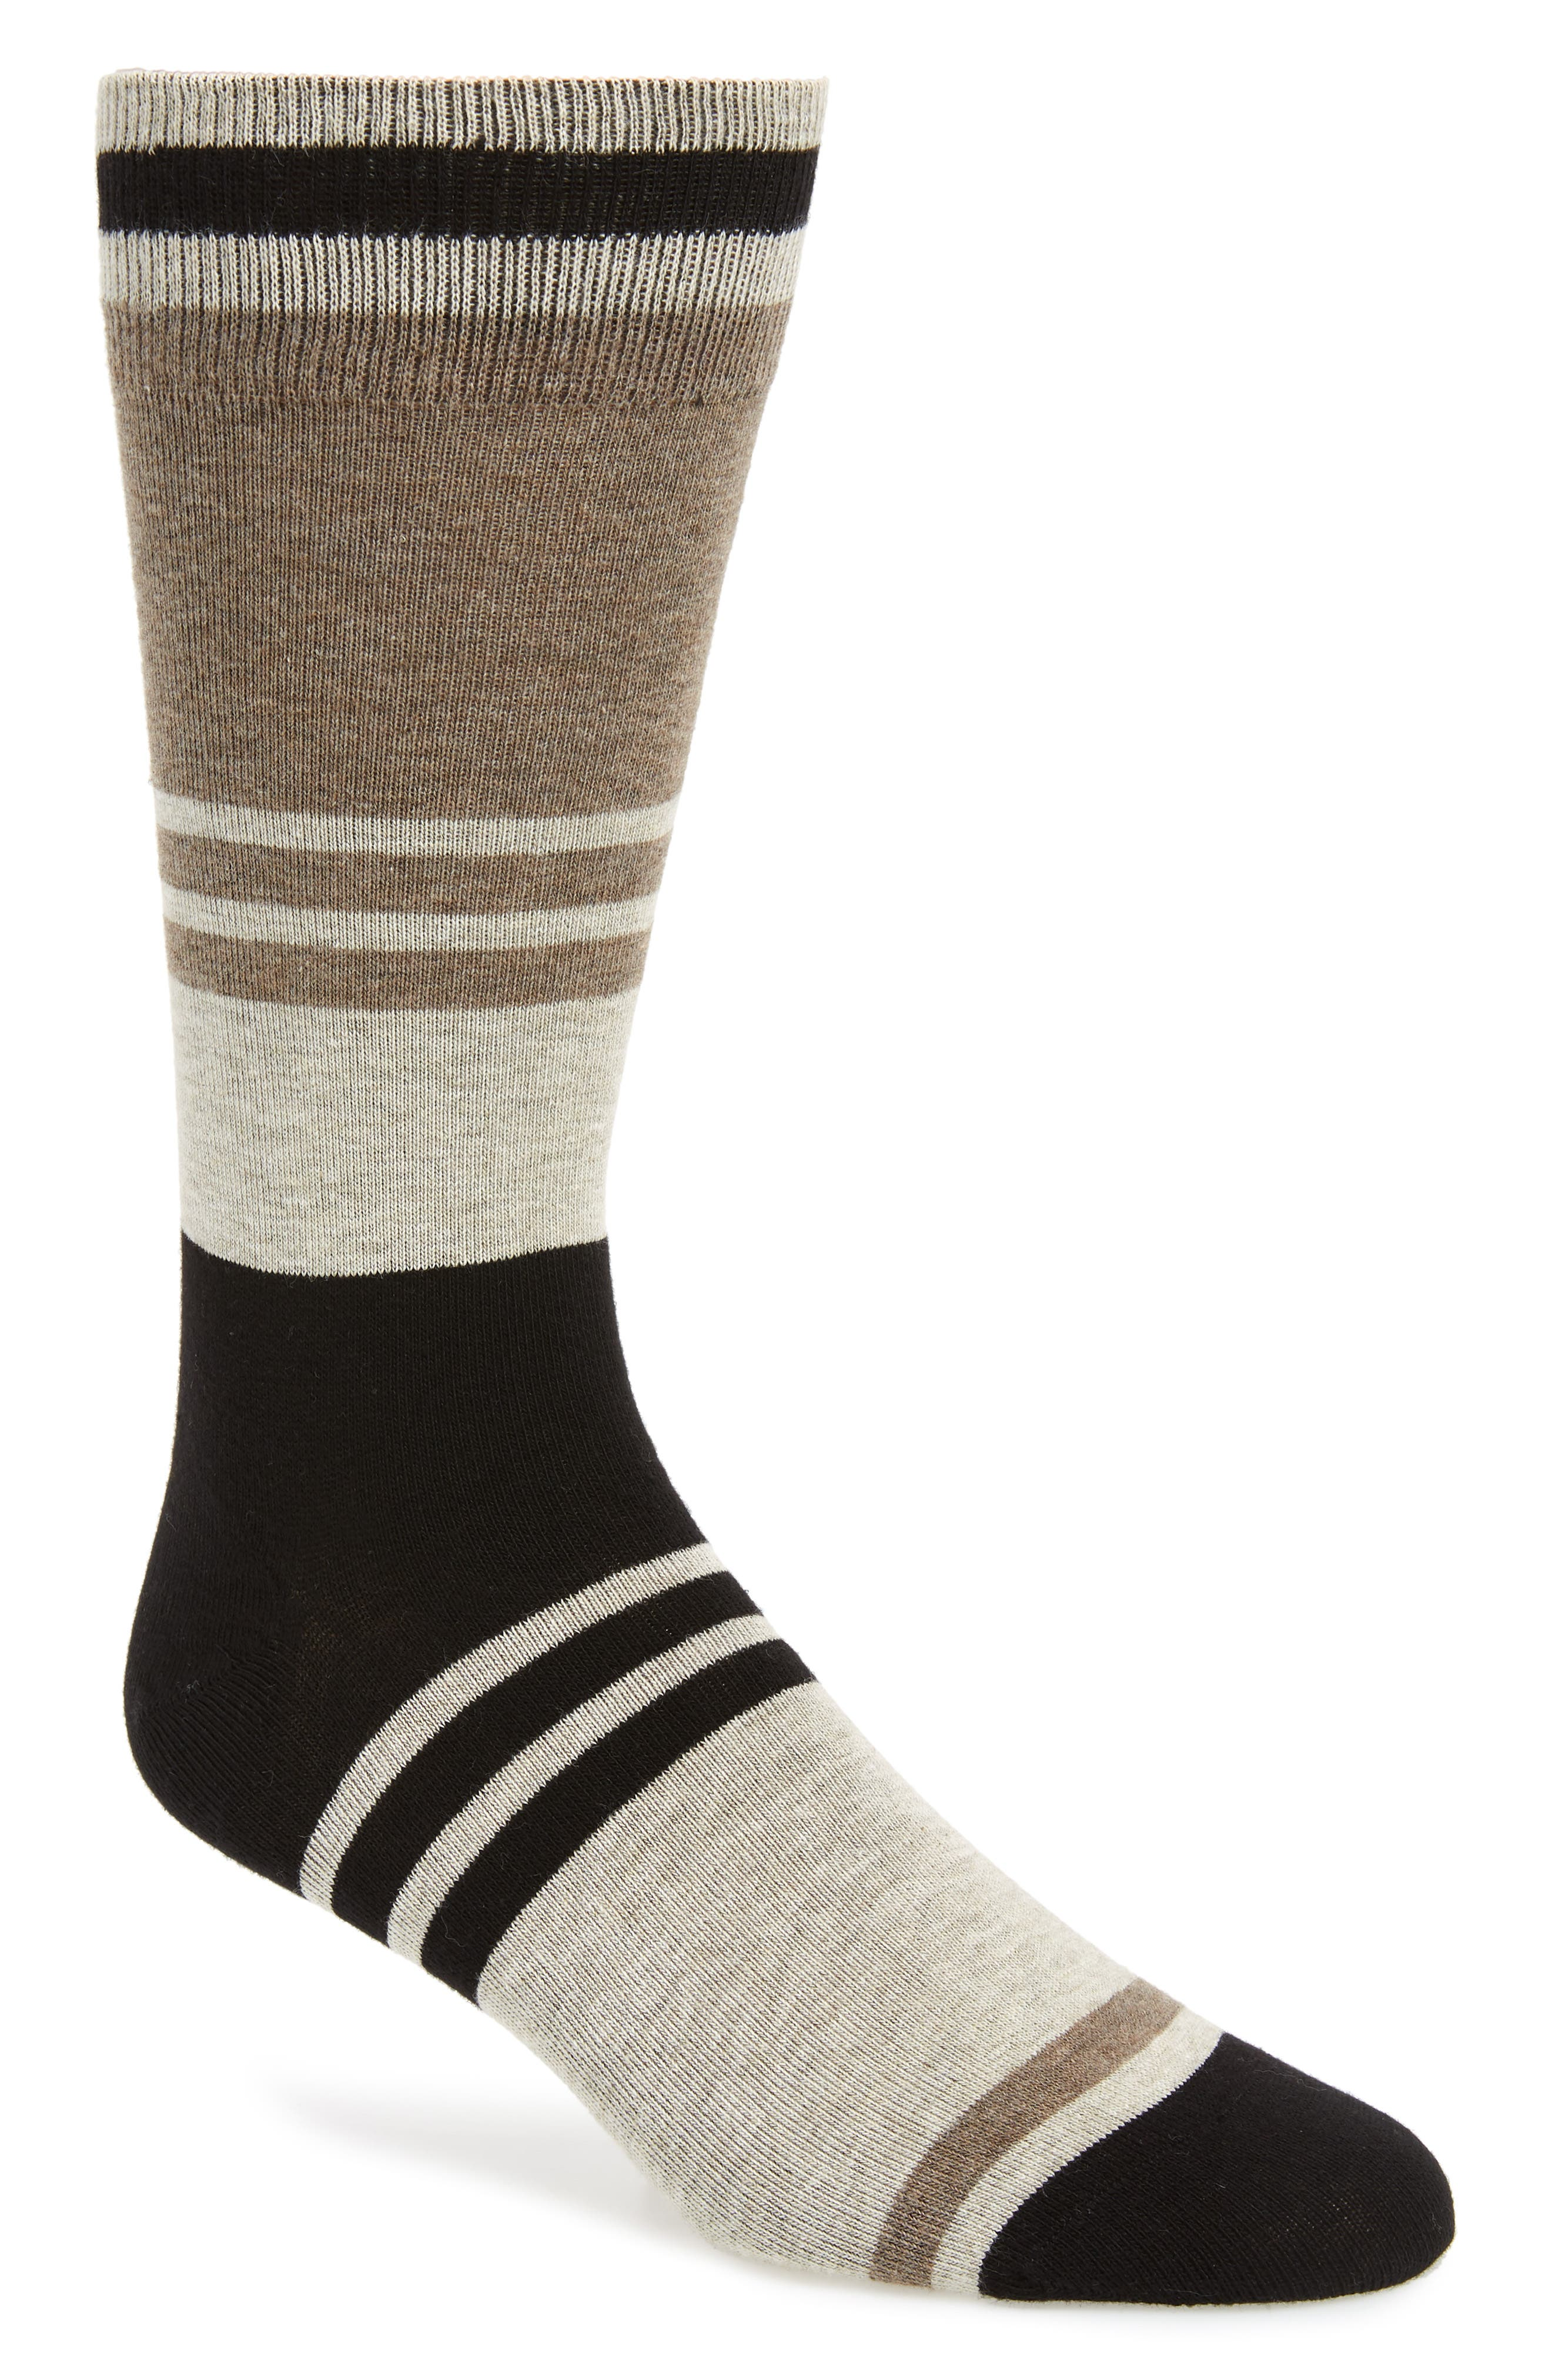 Collegiate Colorblock Socks,                             Main thumbnail 1, color,                             KHAKI